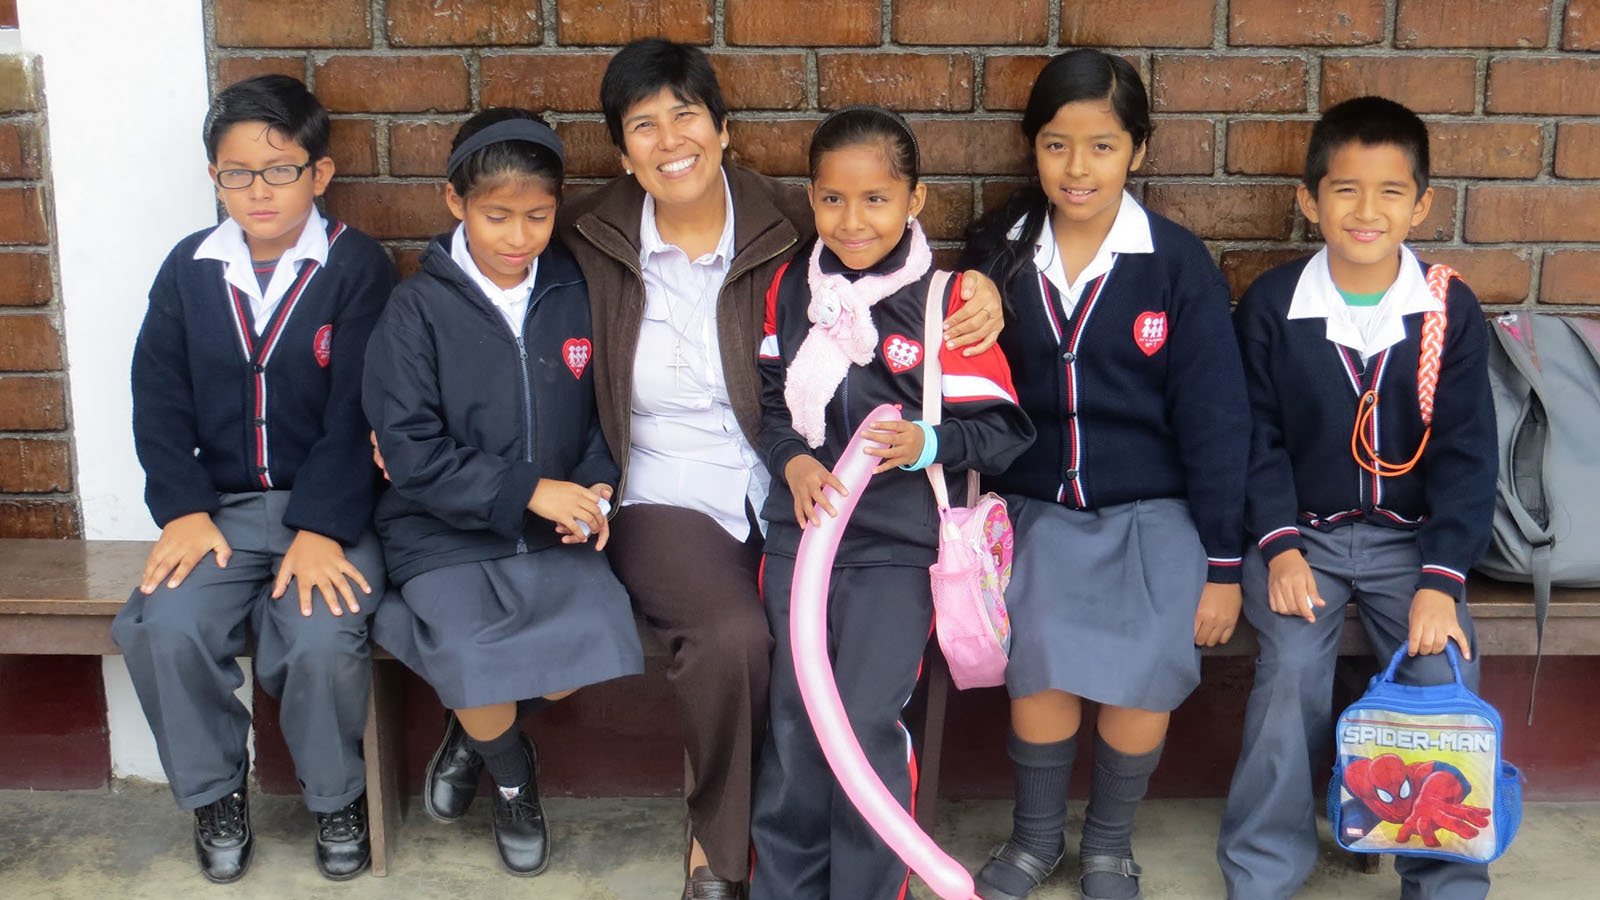 School children pose with a member of Entreculturas